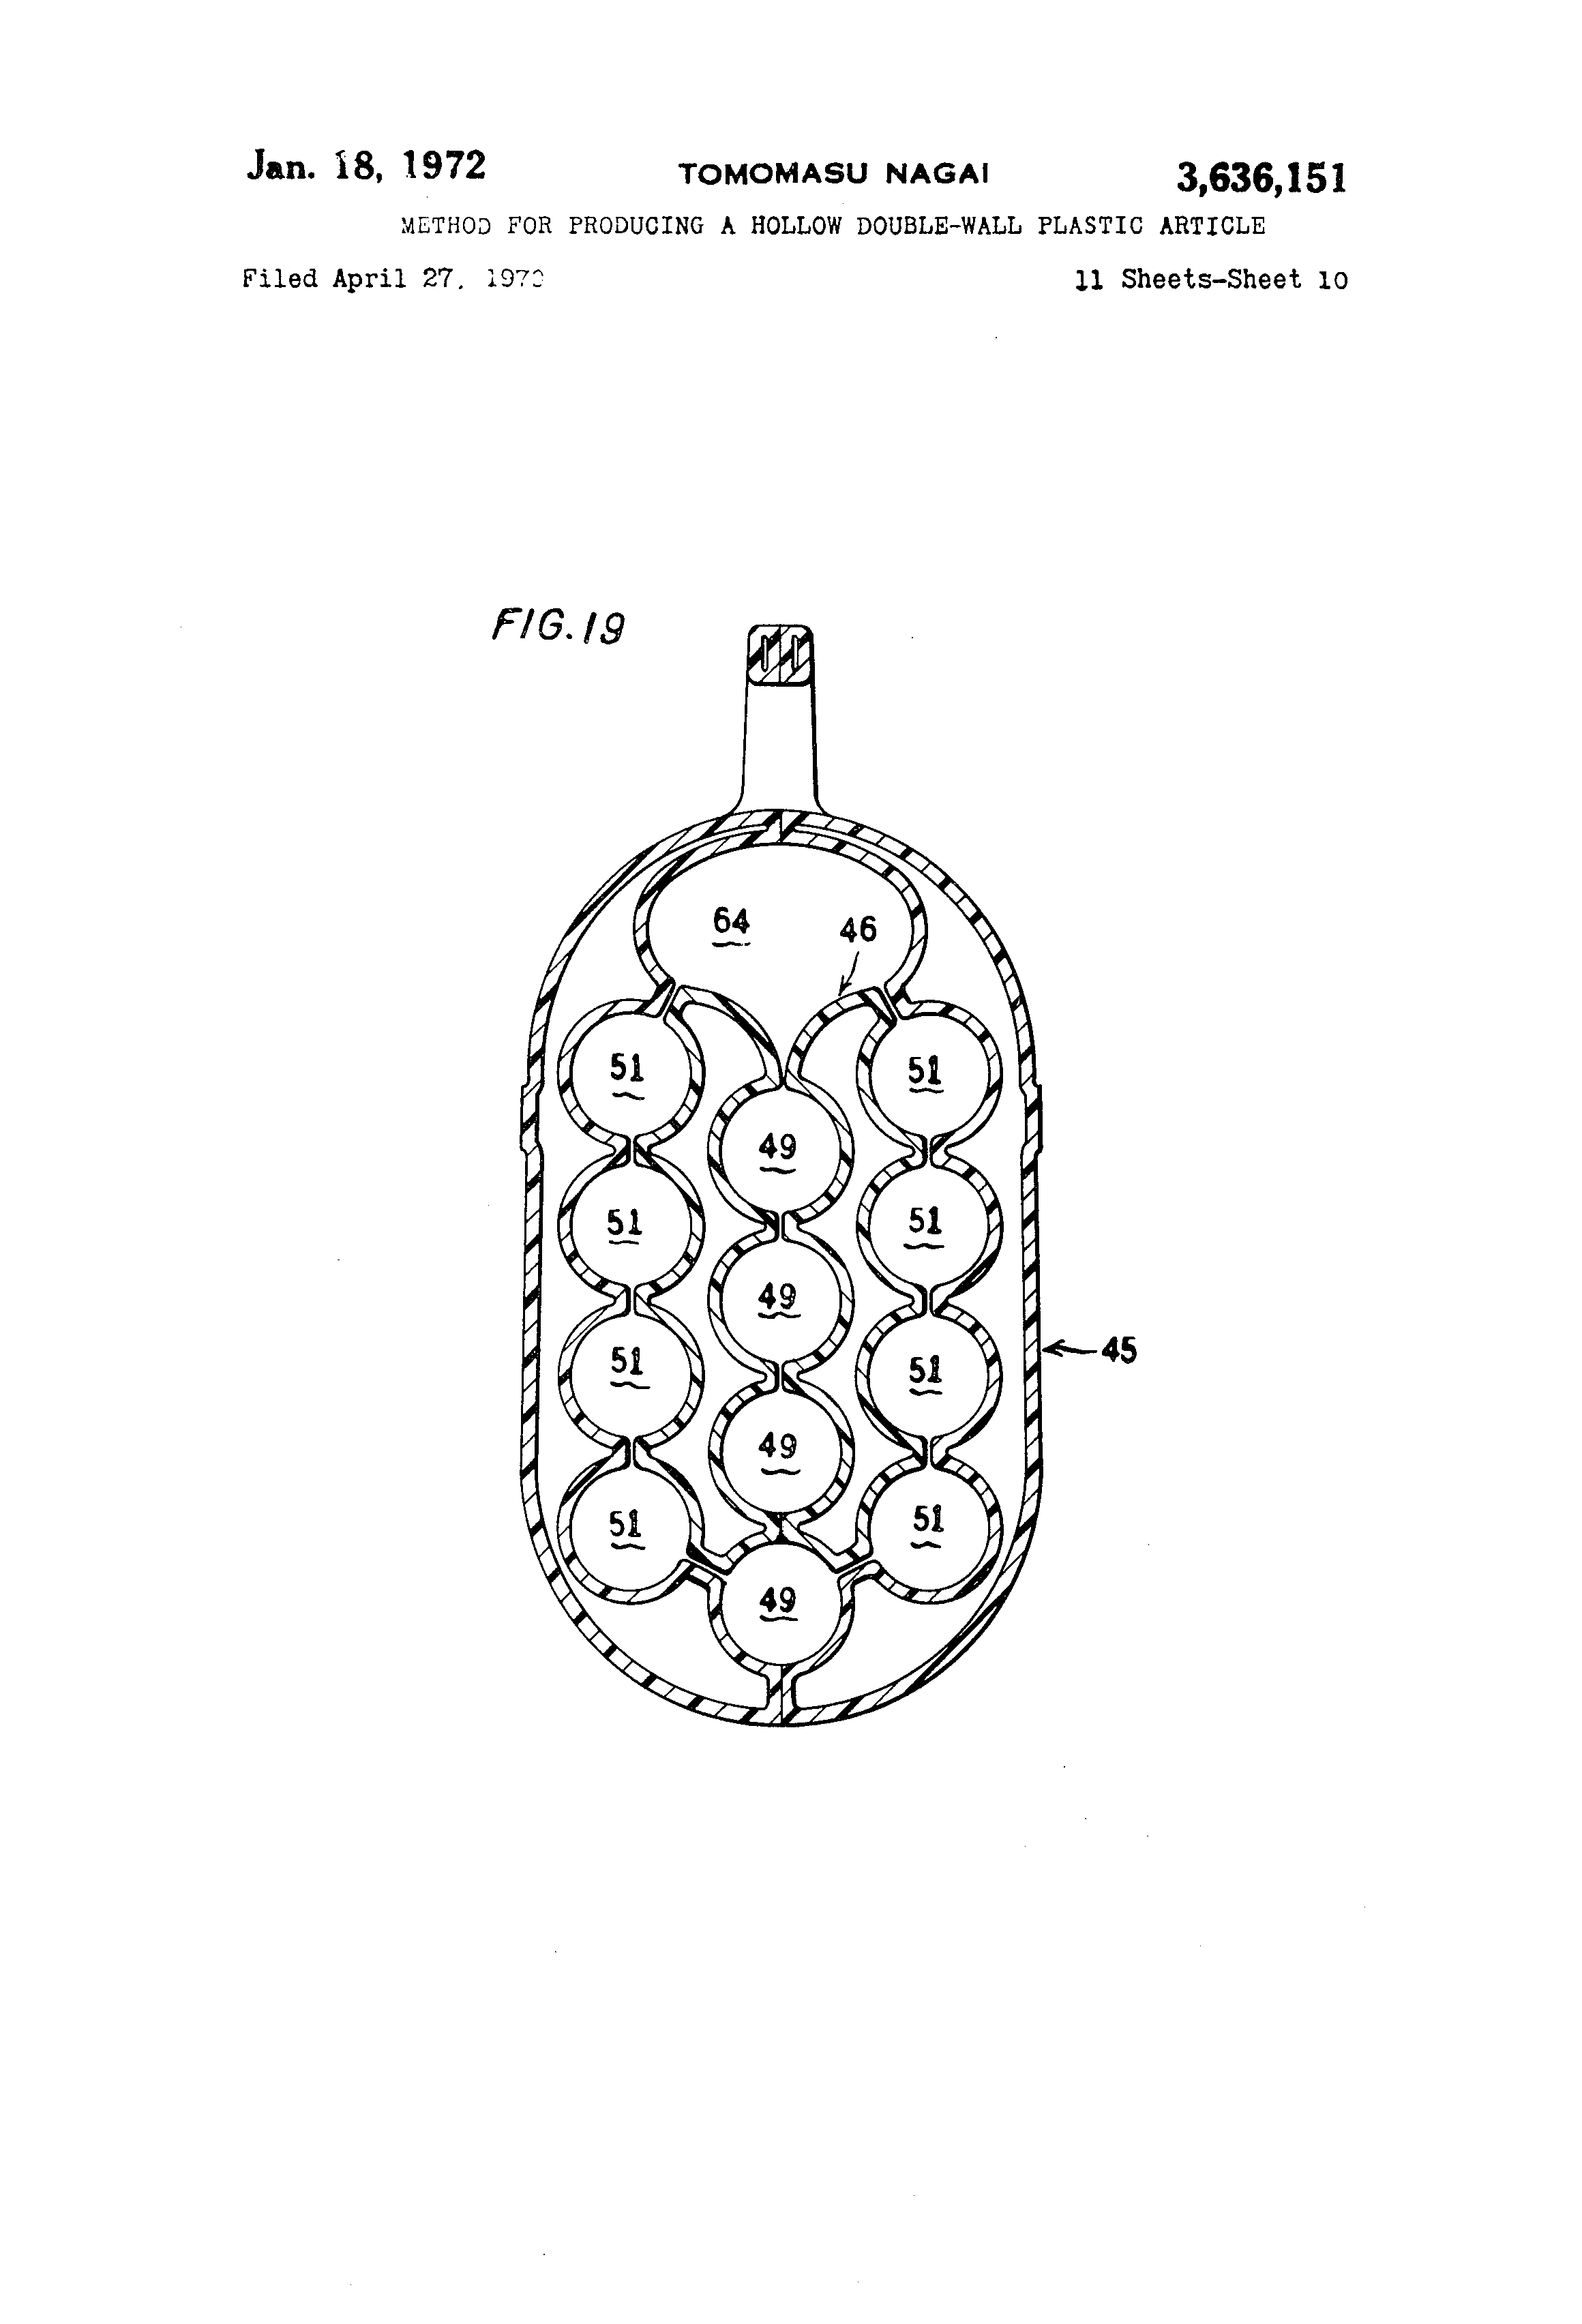 Brevet US3636151 - Method for producing a hollow